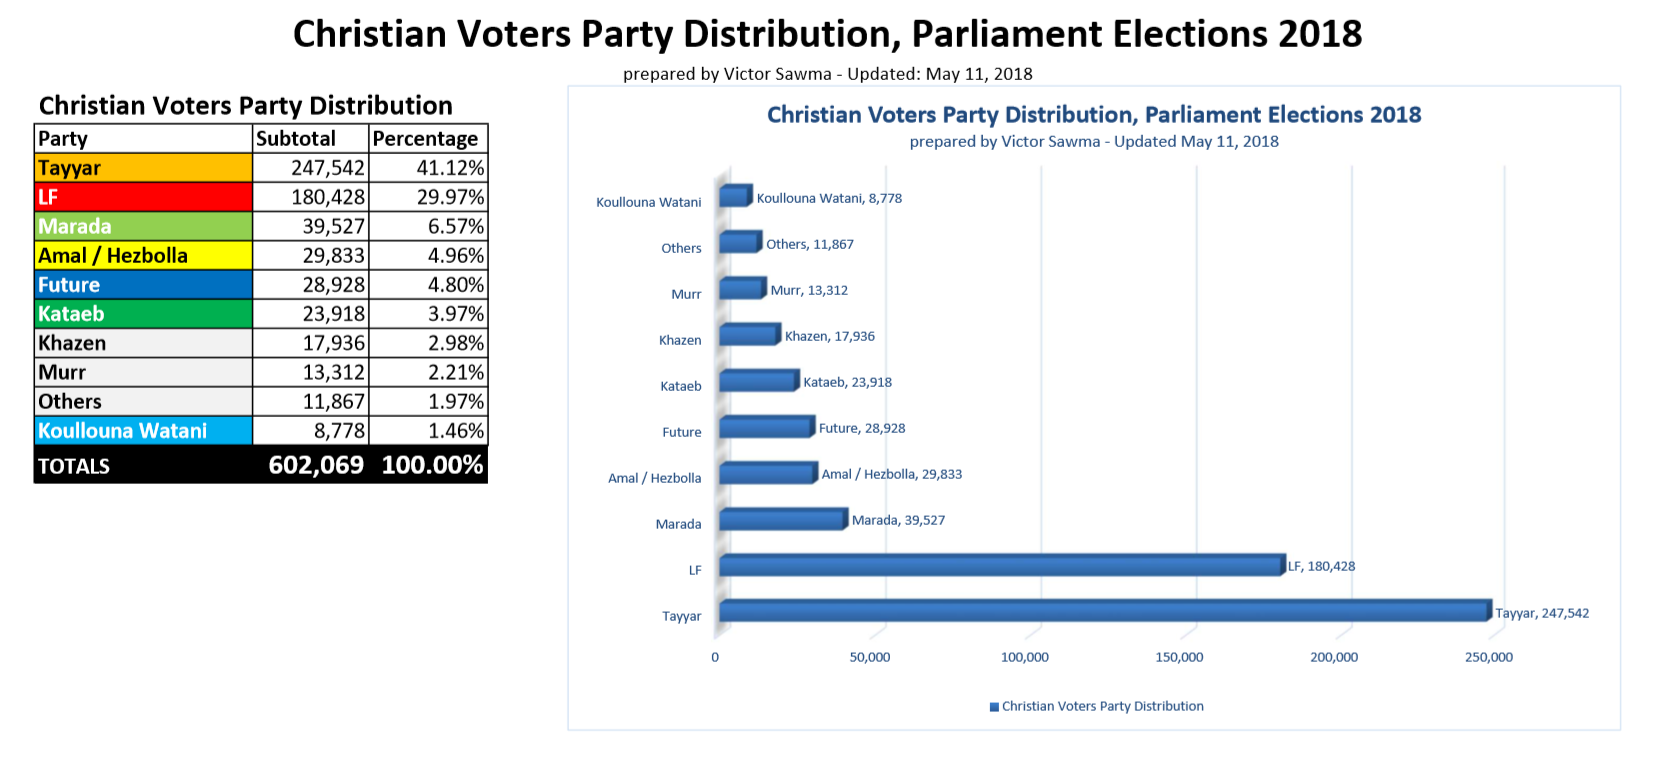 Christian Voters Party Distribution, Parliament Elections 2018, Lebanon